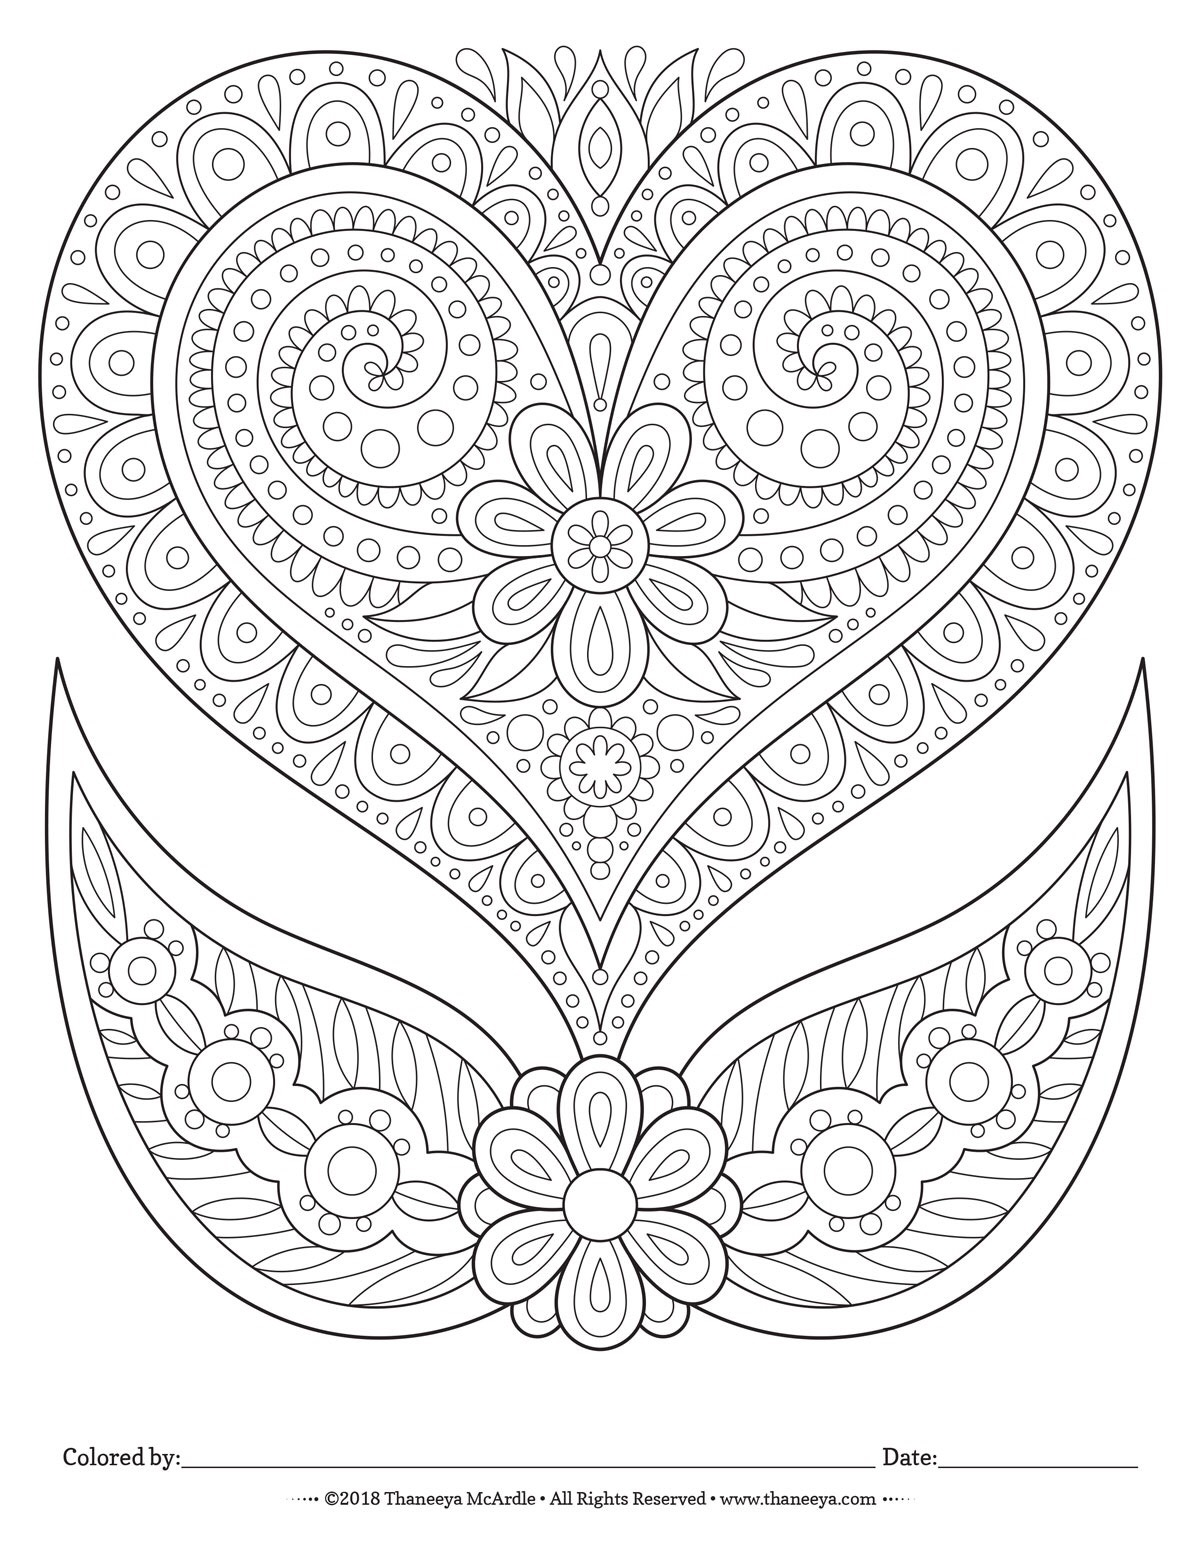 free-heart-flower-coloring-page-by-thaneeya.jpg